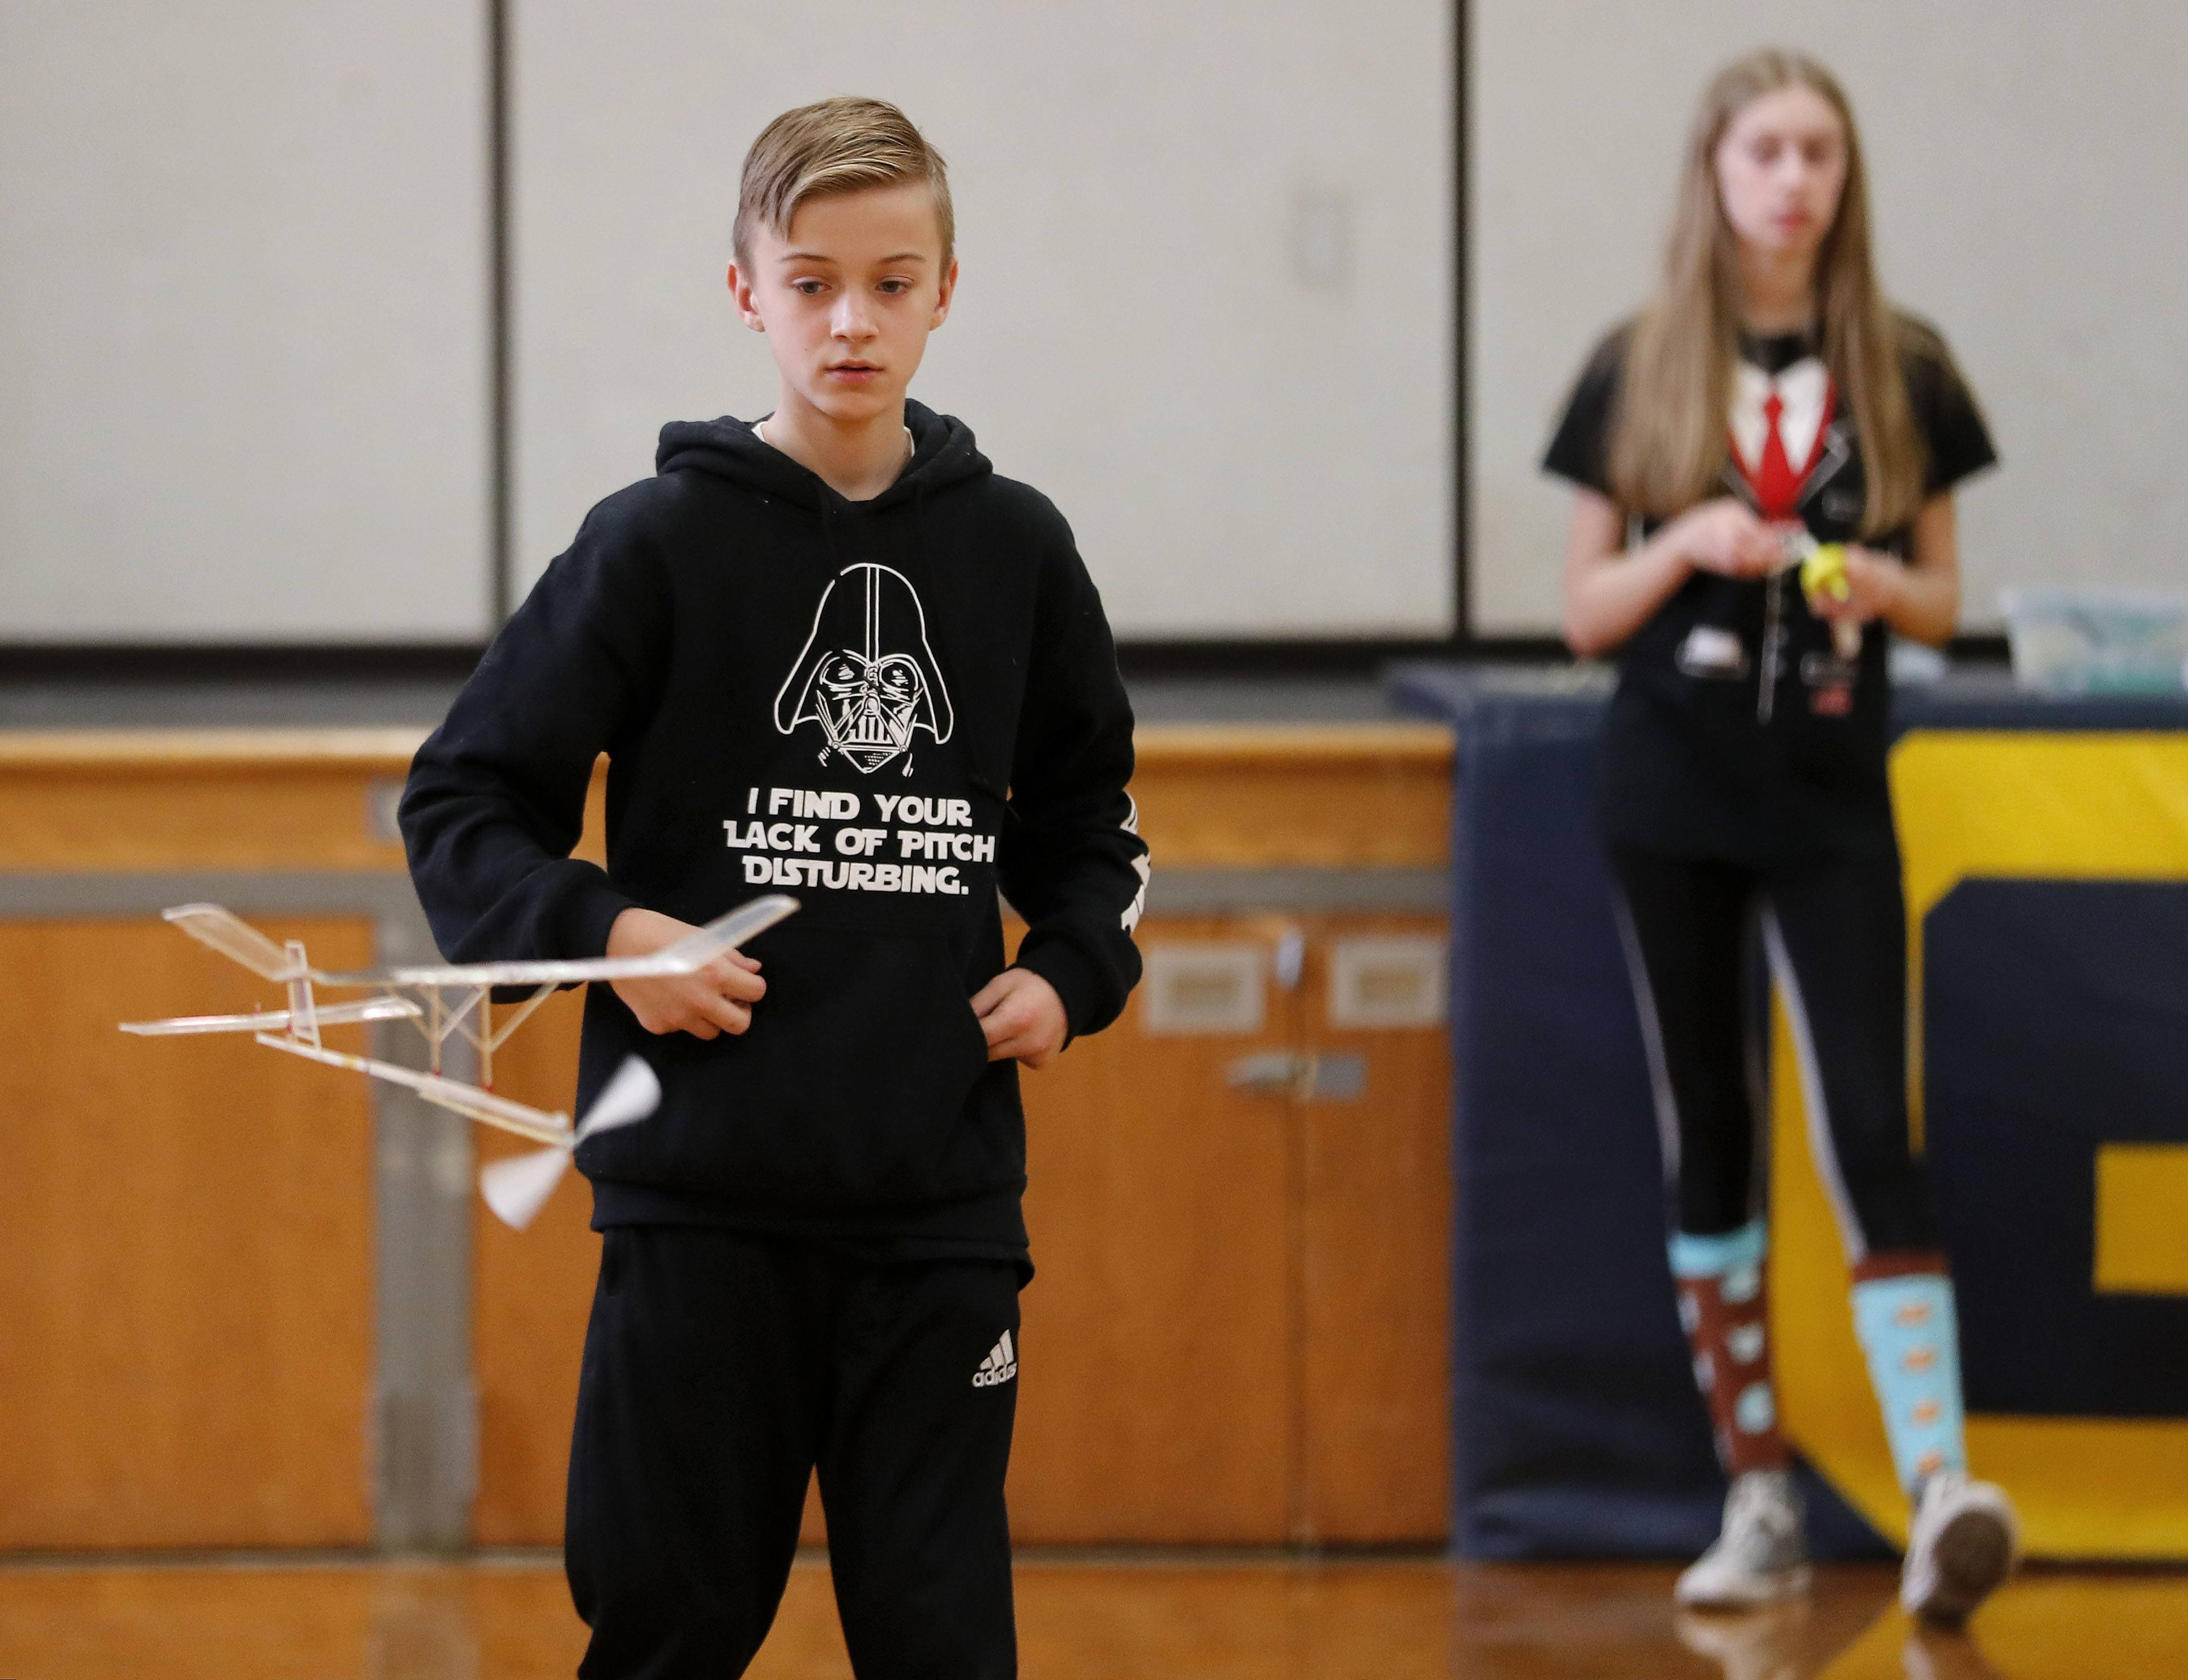 Grayslake Middle School students Leo Pietruszynski, left, and Sarah Burkinshaw put their plane through a test Saturday during the Grayslake Invitational Science Olympiad. The invitational featured 47 middle school teams from all over Illinois.